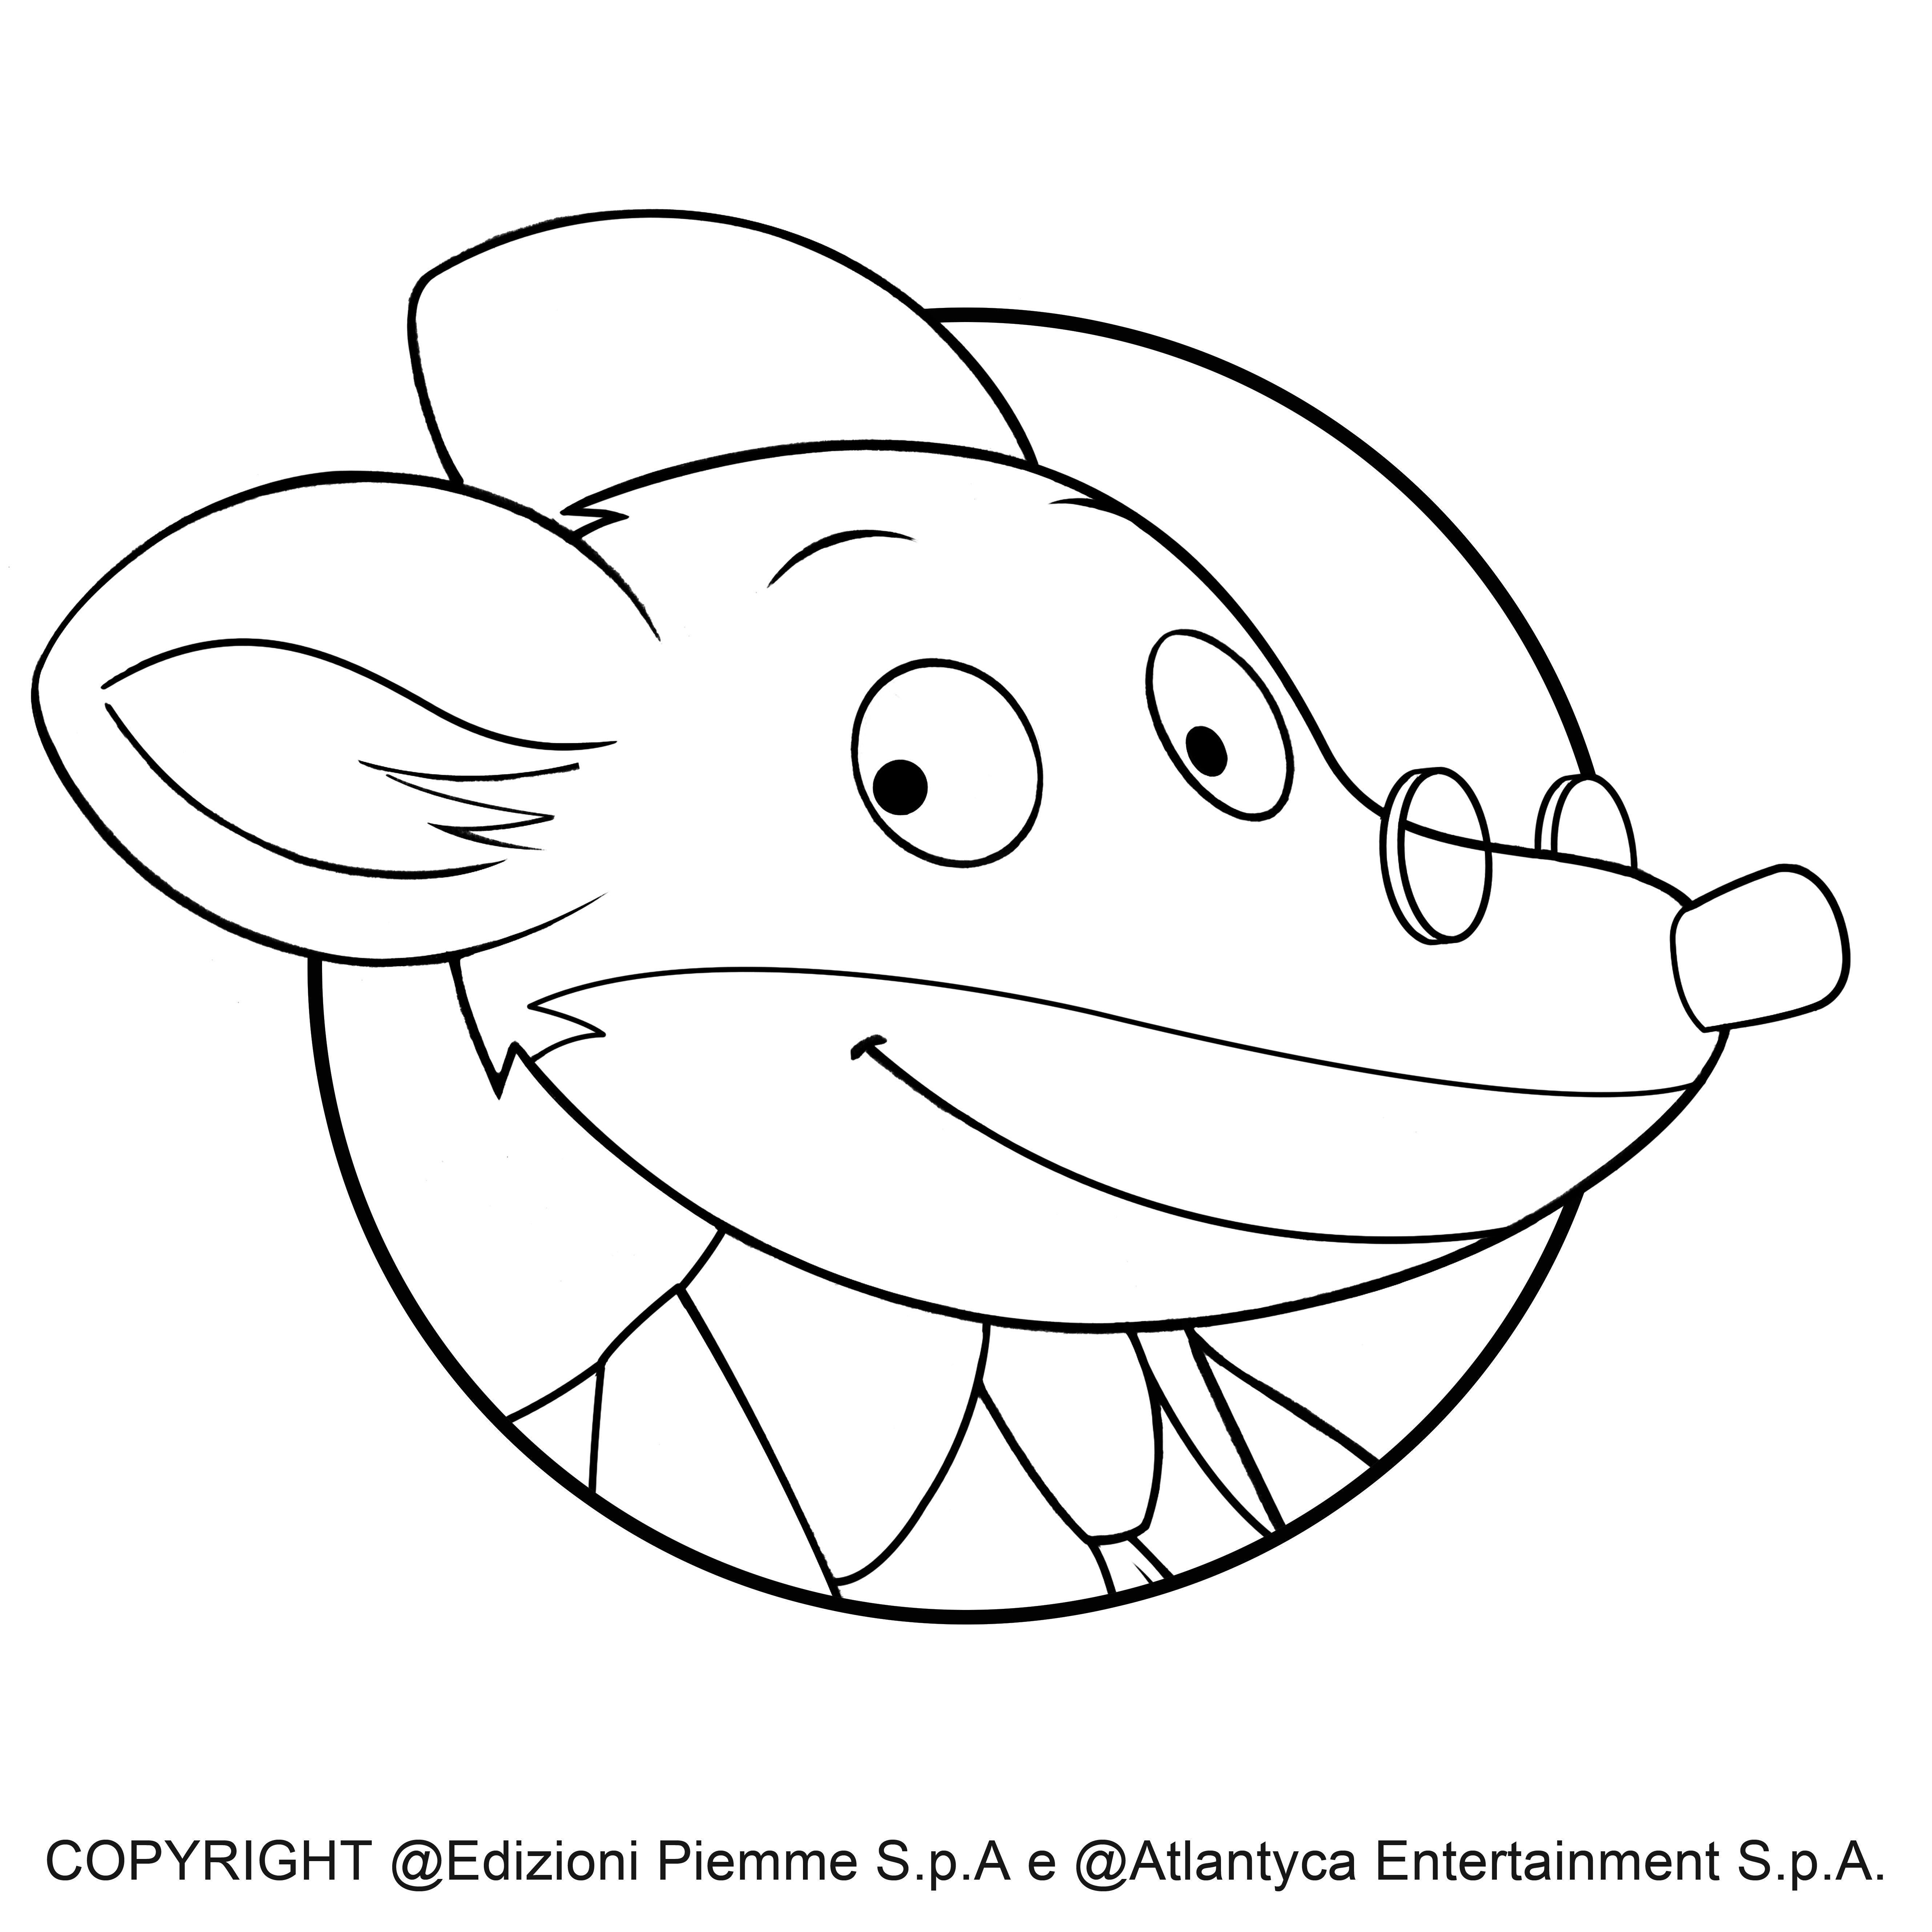 Pin Di Regin La Radiosa Su Colora Geronimo Stilton